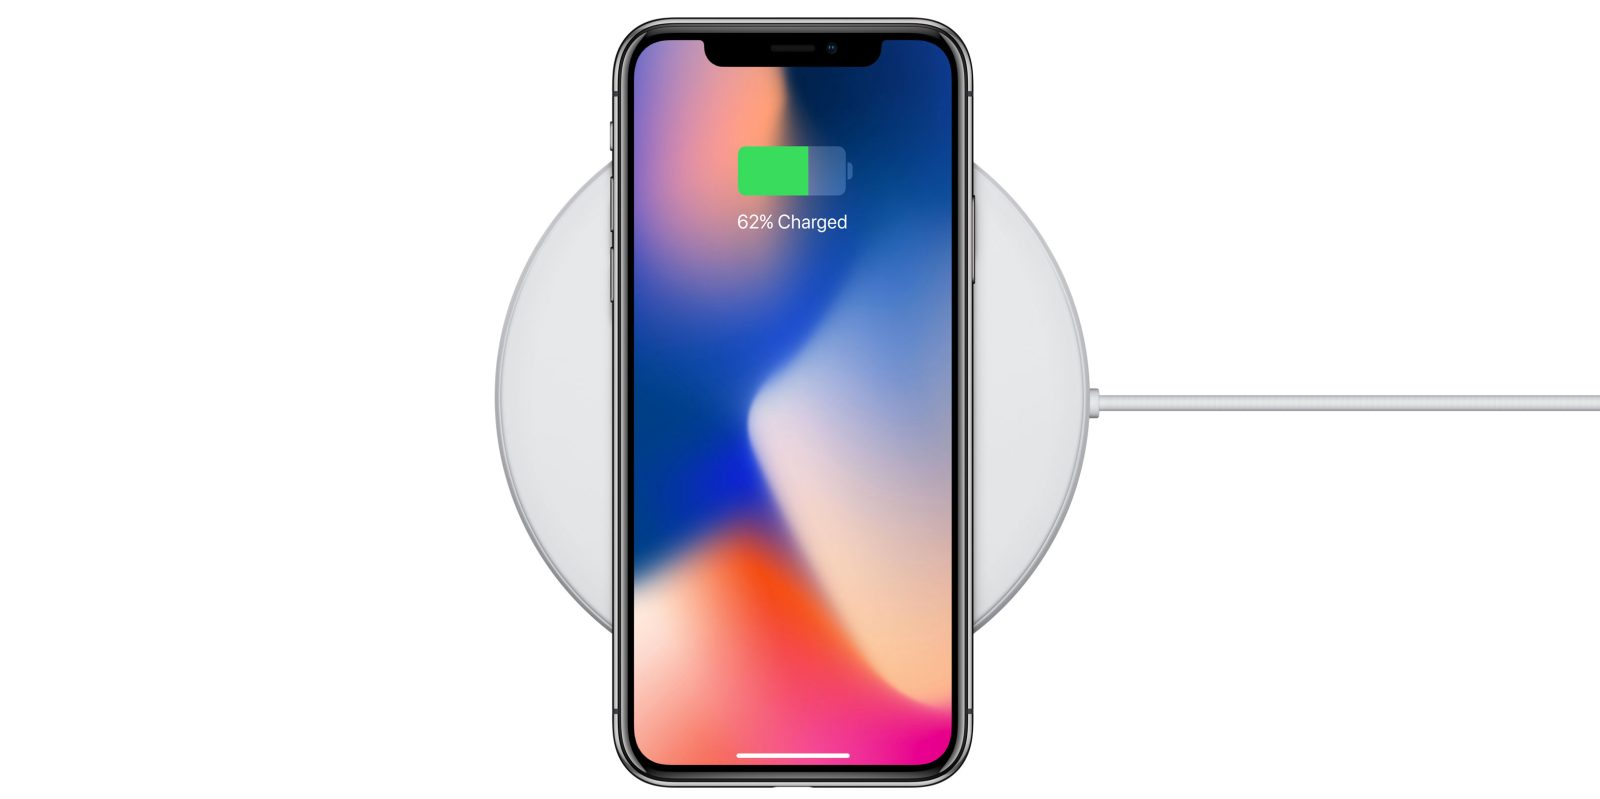 photo image Sprint re-ups 50% off iPhone X offer, now just $20 per month